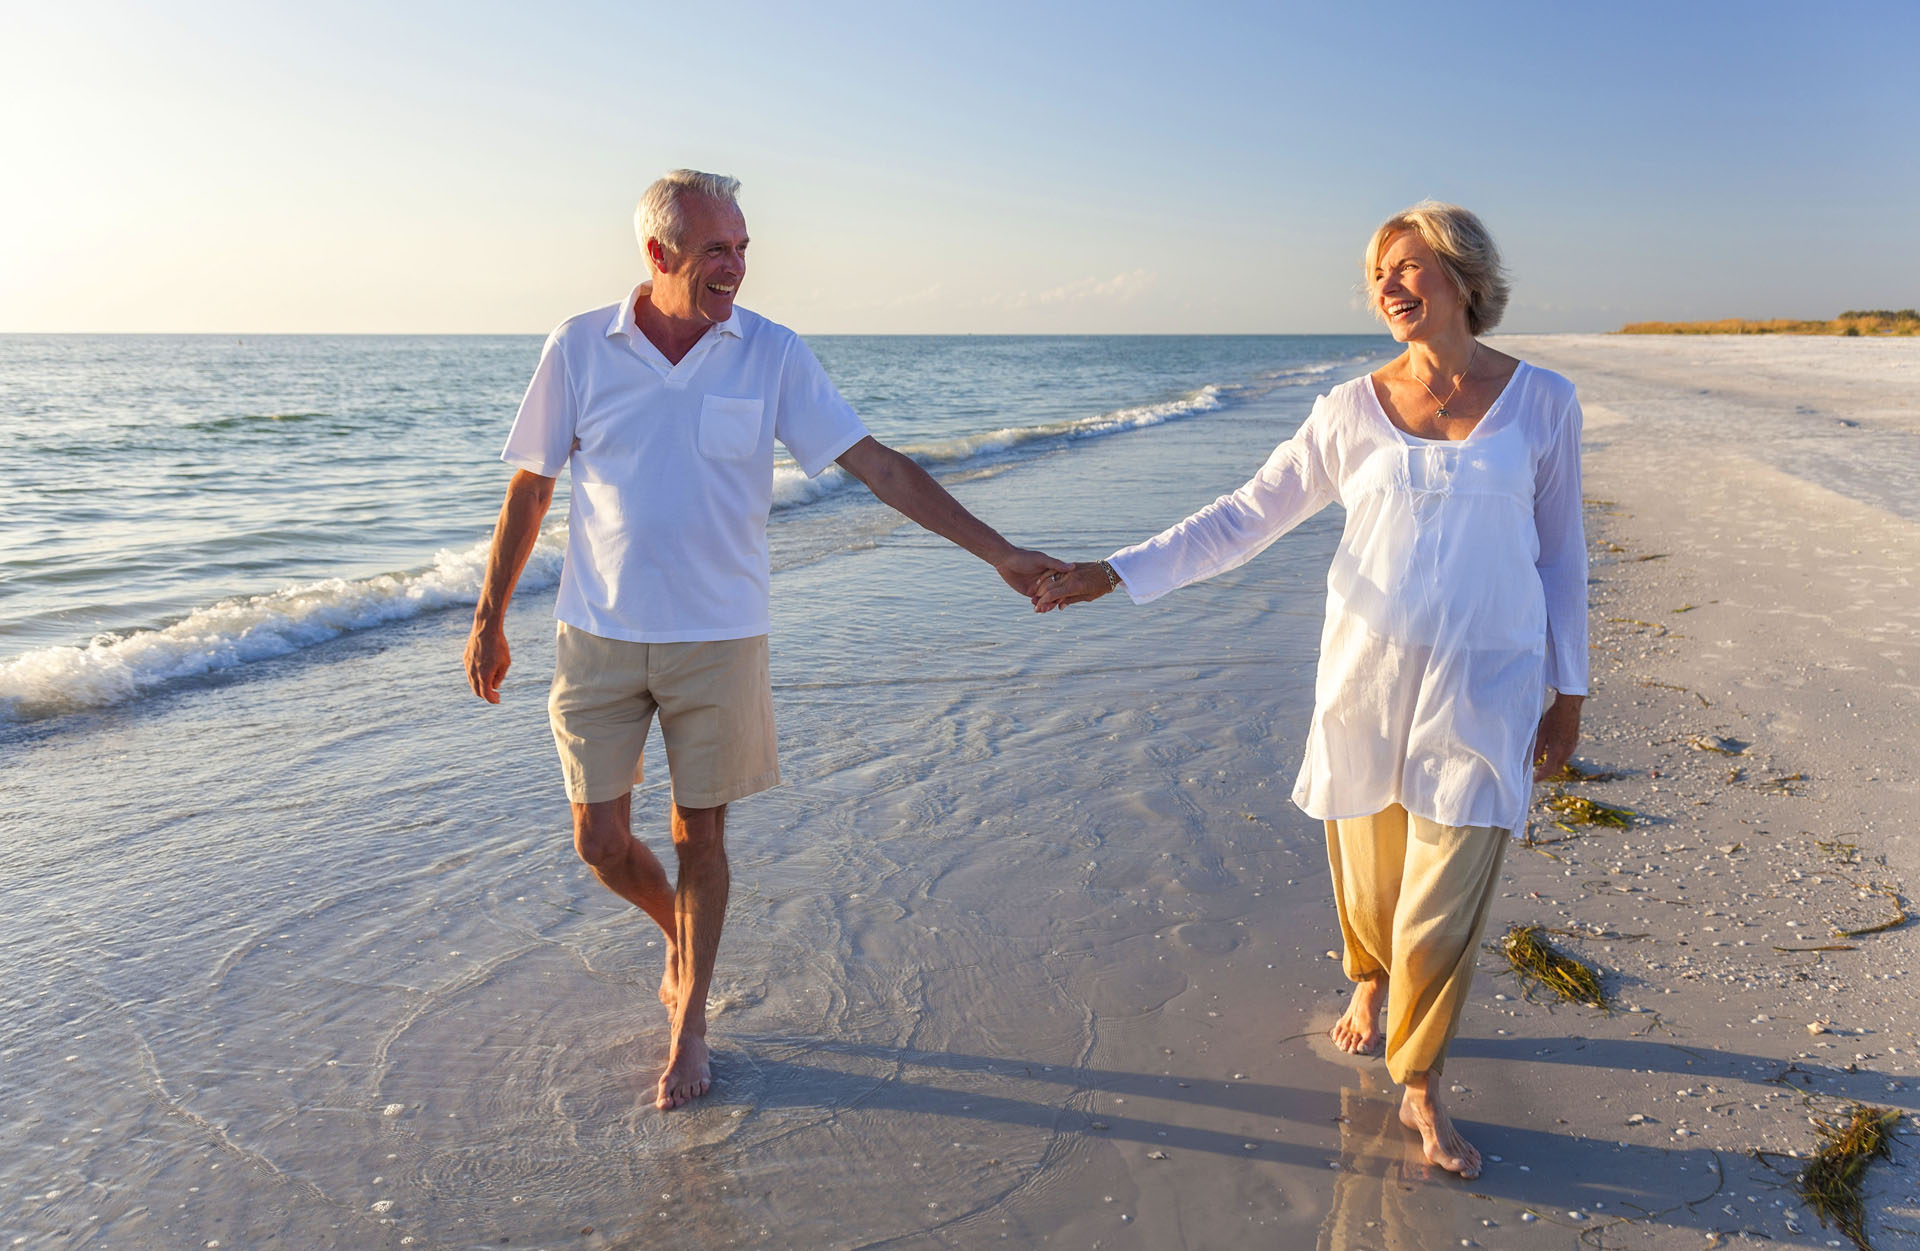 a senior couple in white walking on the beach